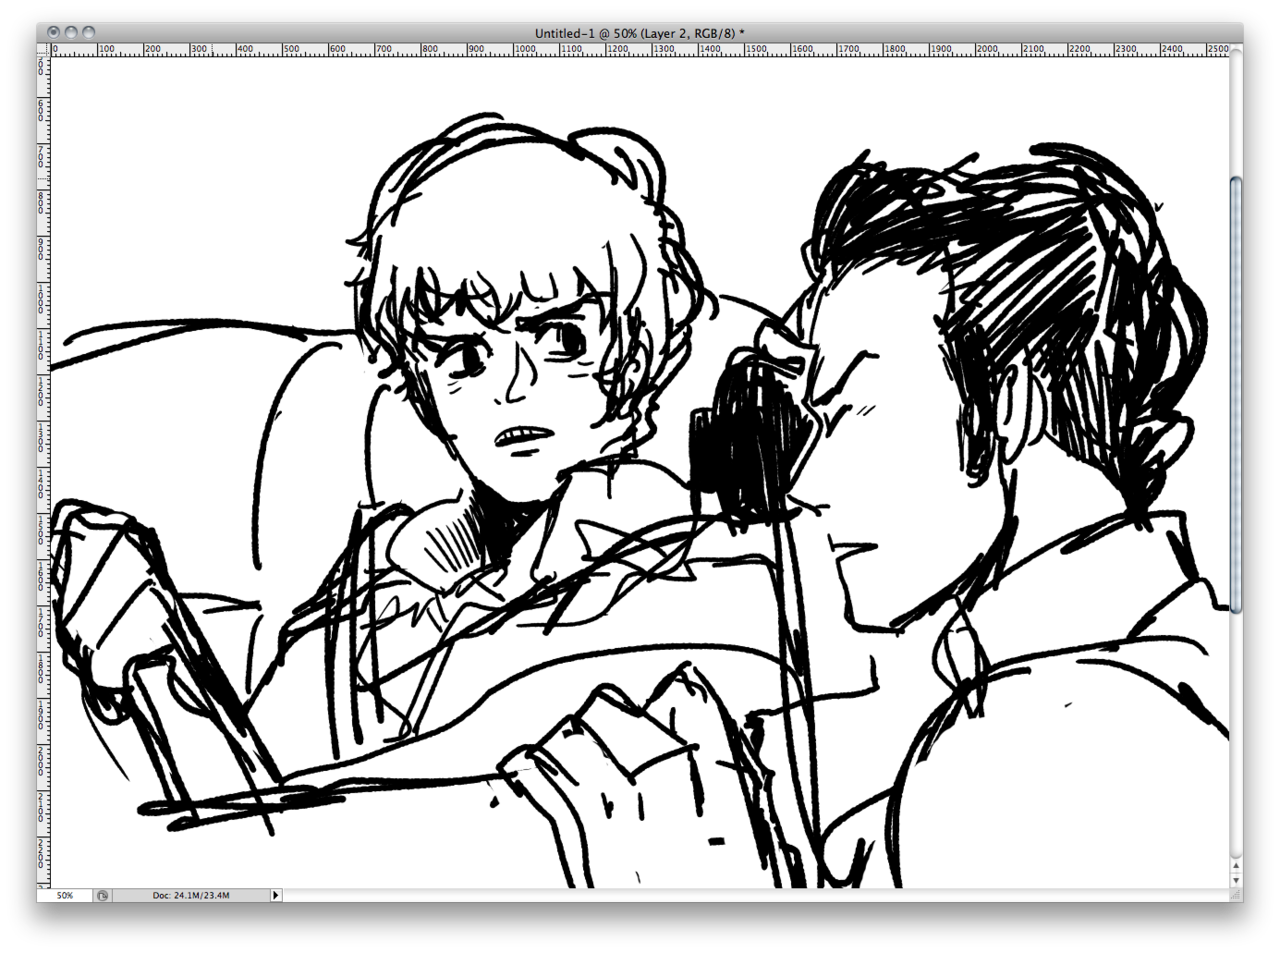 HOLD STILL AMURO I NEED A PIC OF YOU IN MY OFFICE